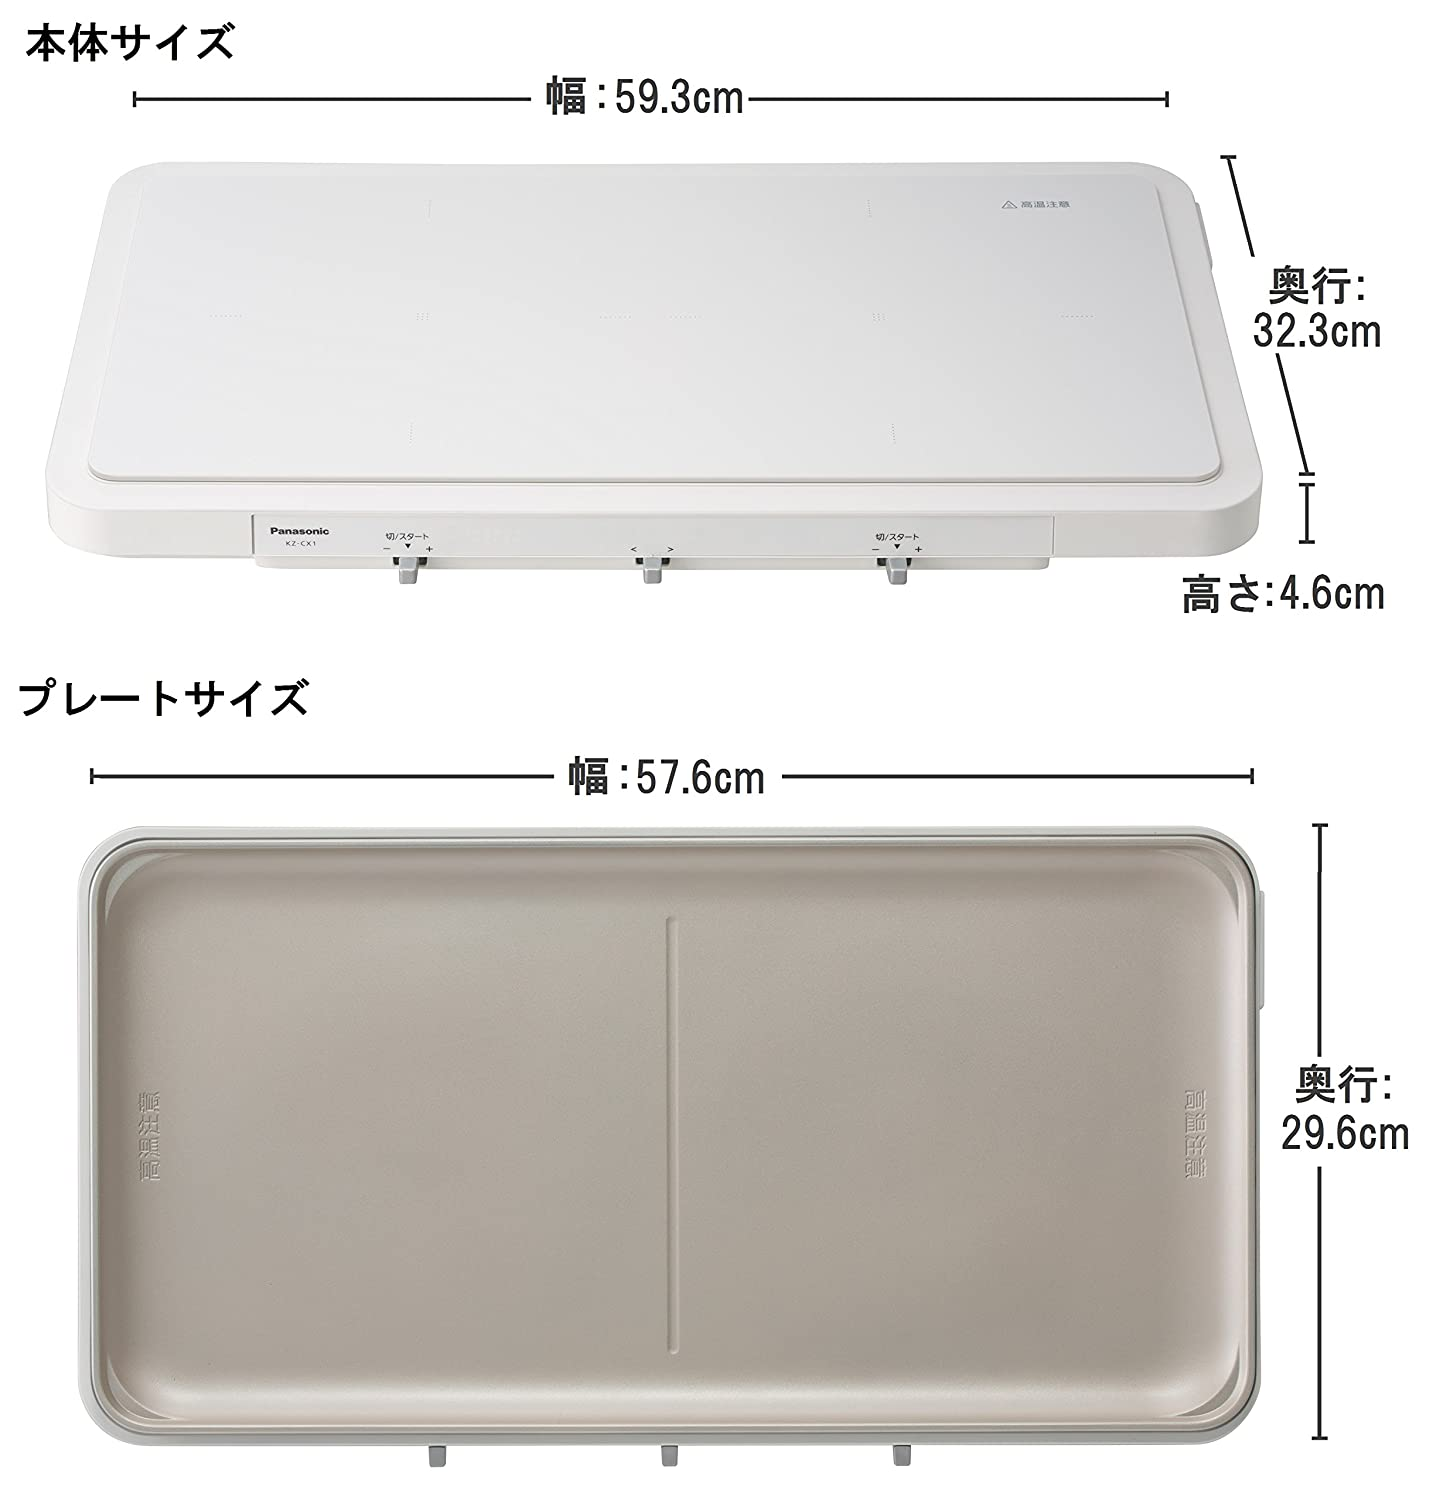 Amazon.com: Panasonic IH Daily Hot Plate KZ-CX1-W (WHITE)【Japan Domestic Genuine Products】【Ships from Japan】: Kitchen & Dining